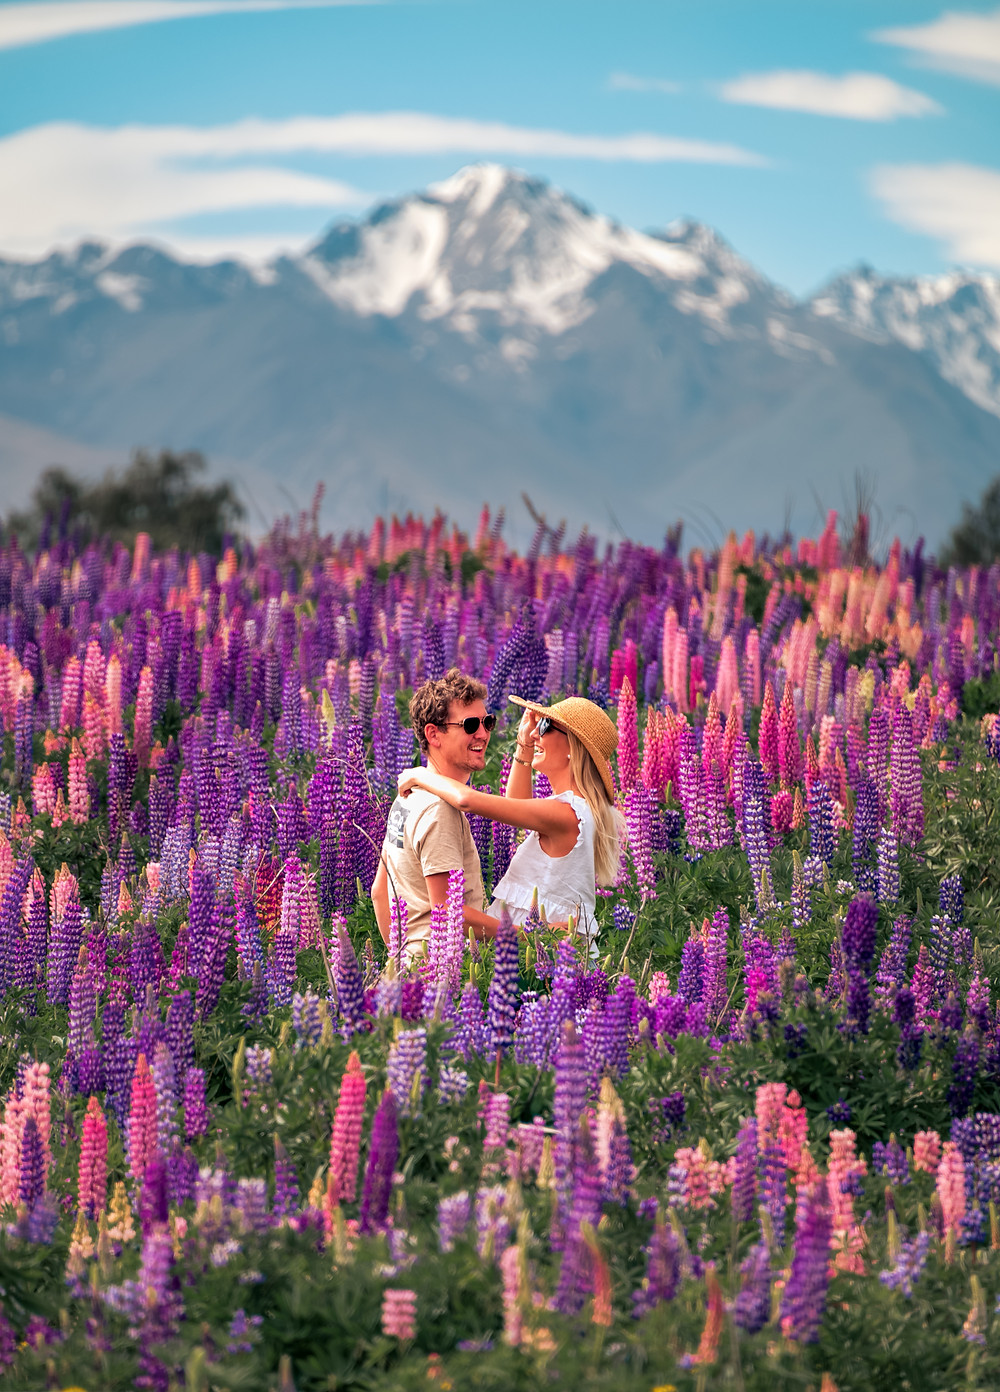 travel couple in a field of lupins with mountains in background at lake tekapo